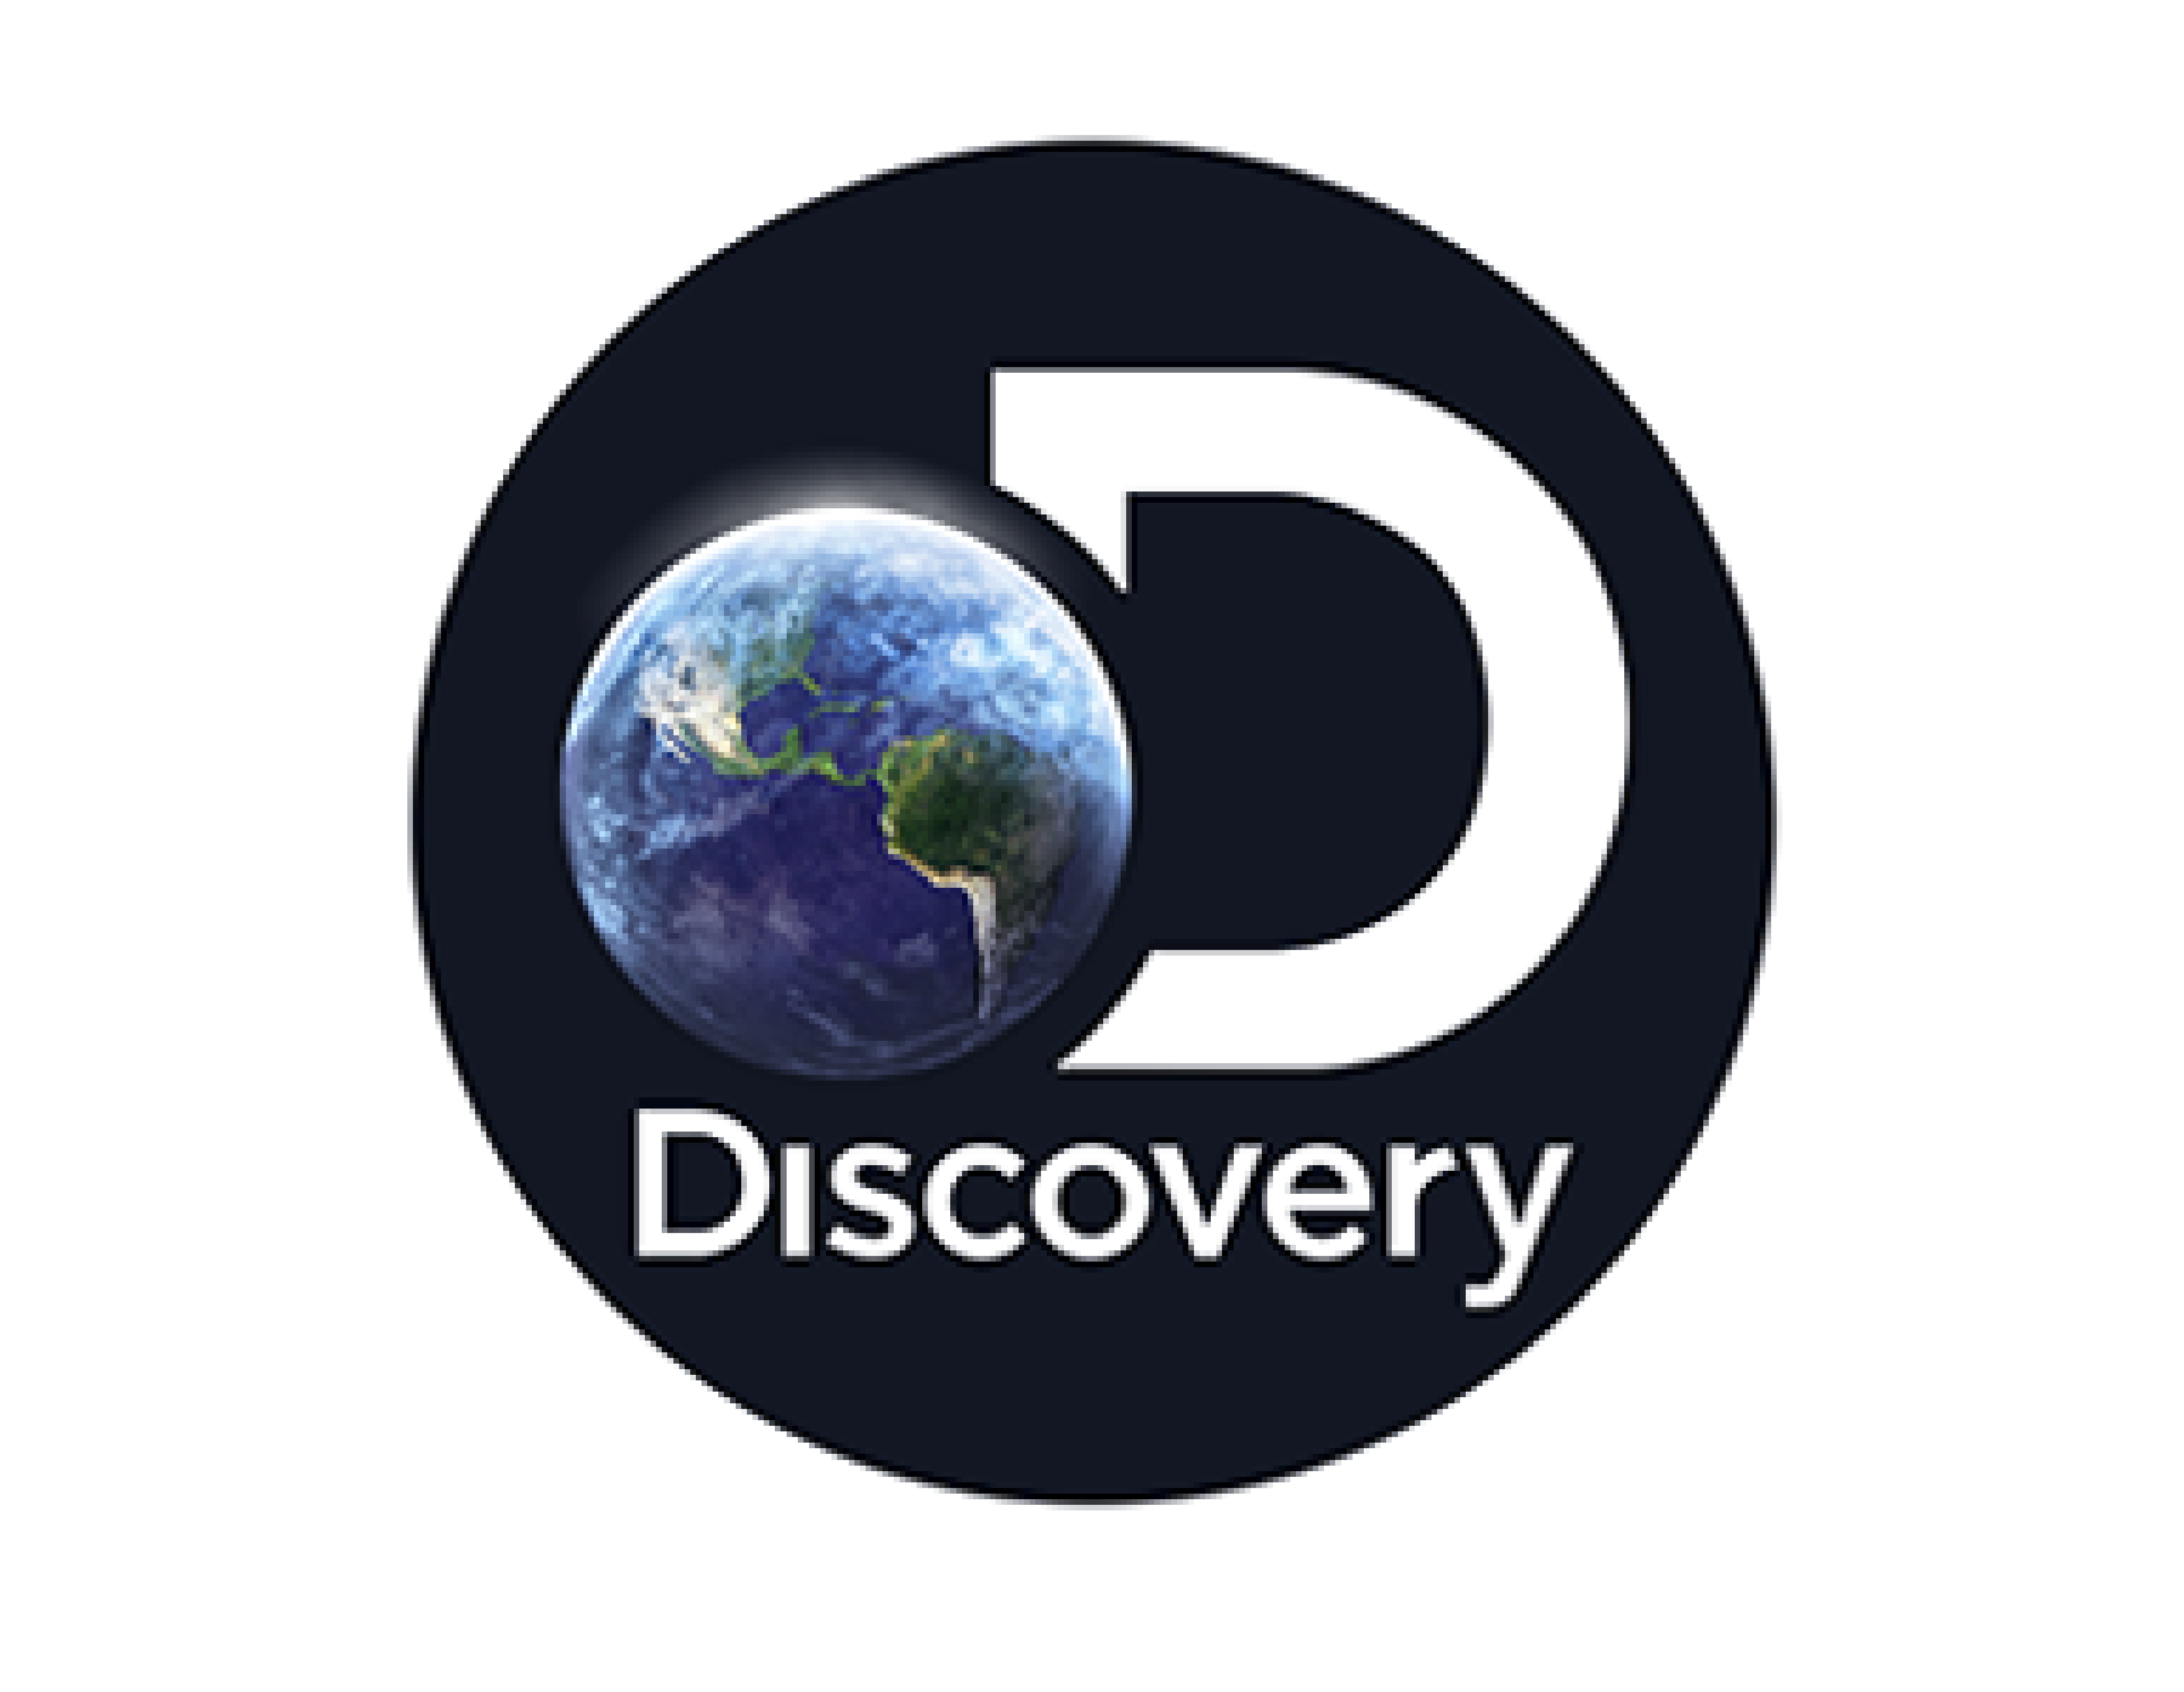 04- Discovery